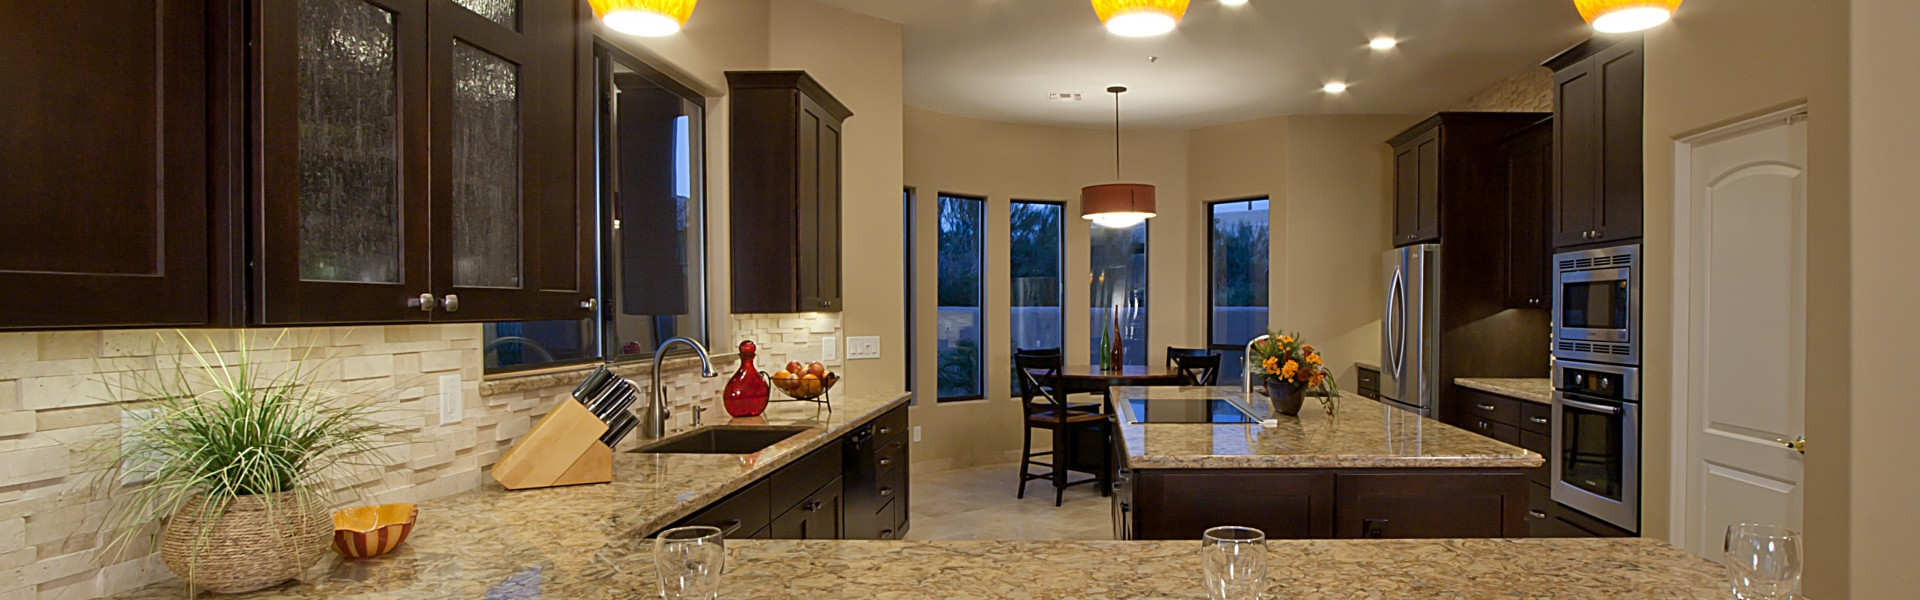 davisdesigngroupaz kitchen remodel scottsdale Custom Kitchen Design